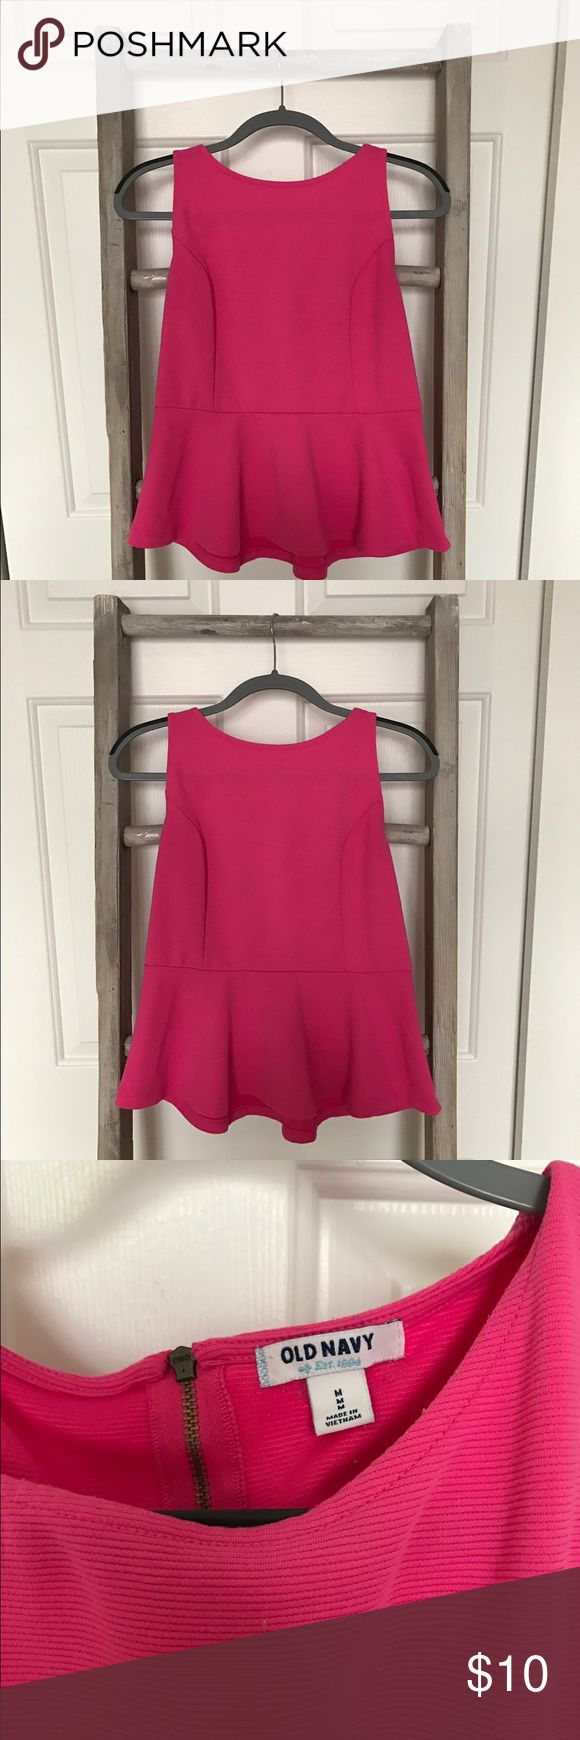 Pink Peplum Top | size medium This peplum is the perfect top to wear to the office or your next girls night out. It has a structured fit, with a half zipper in the back. Fits TTS! Old Navy Tops Blouses